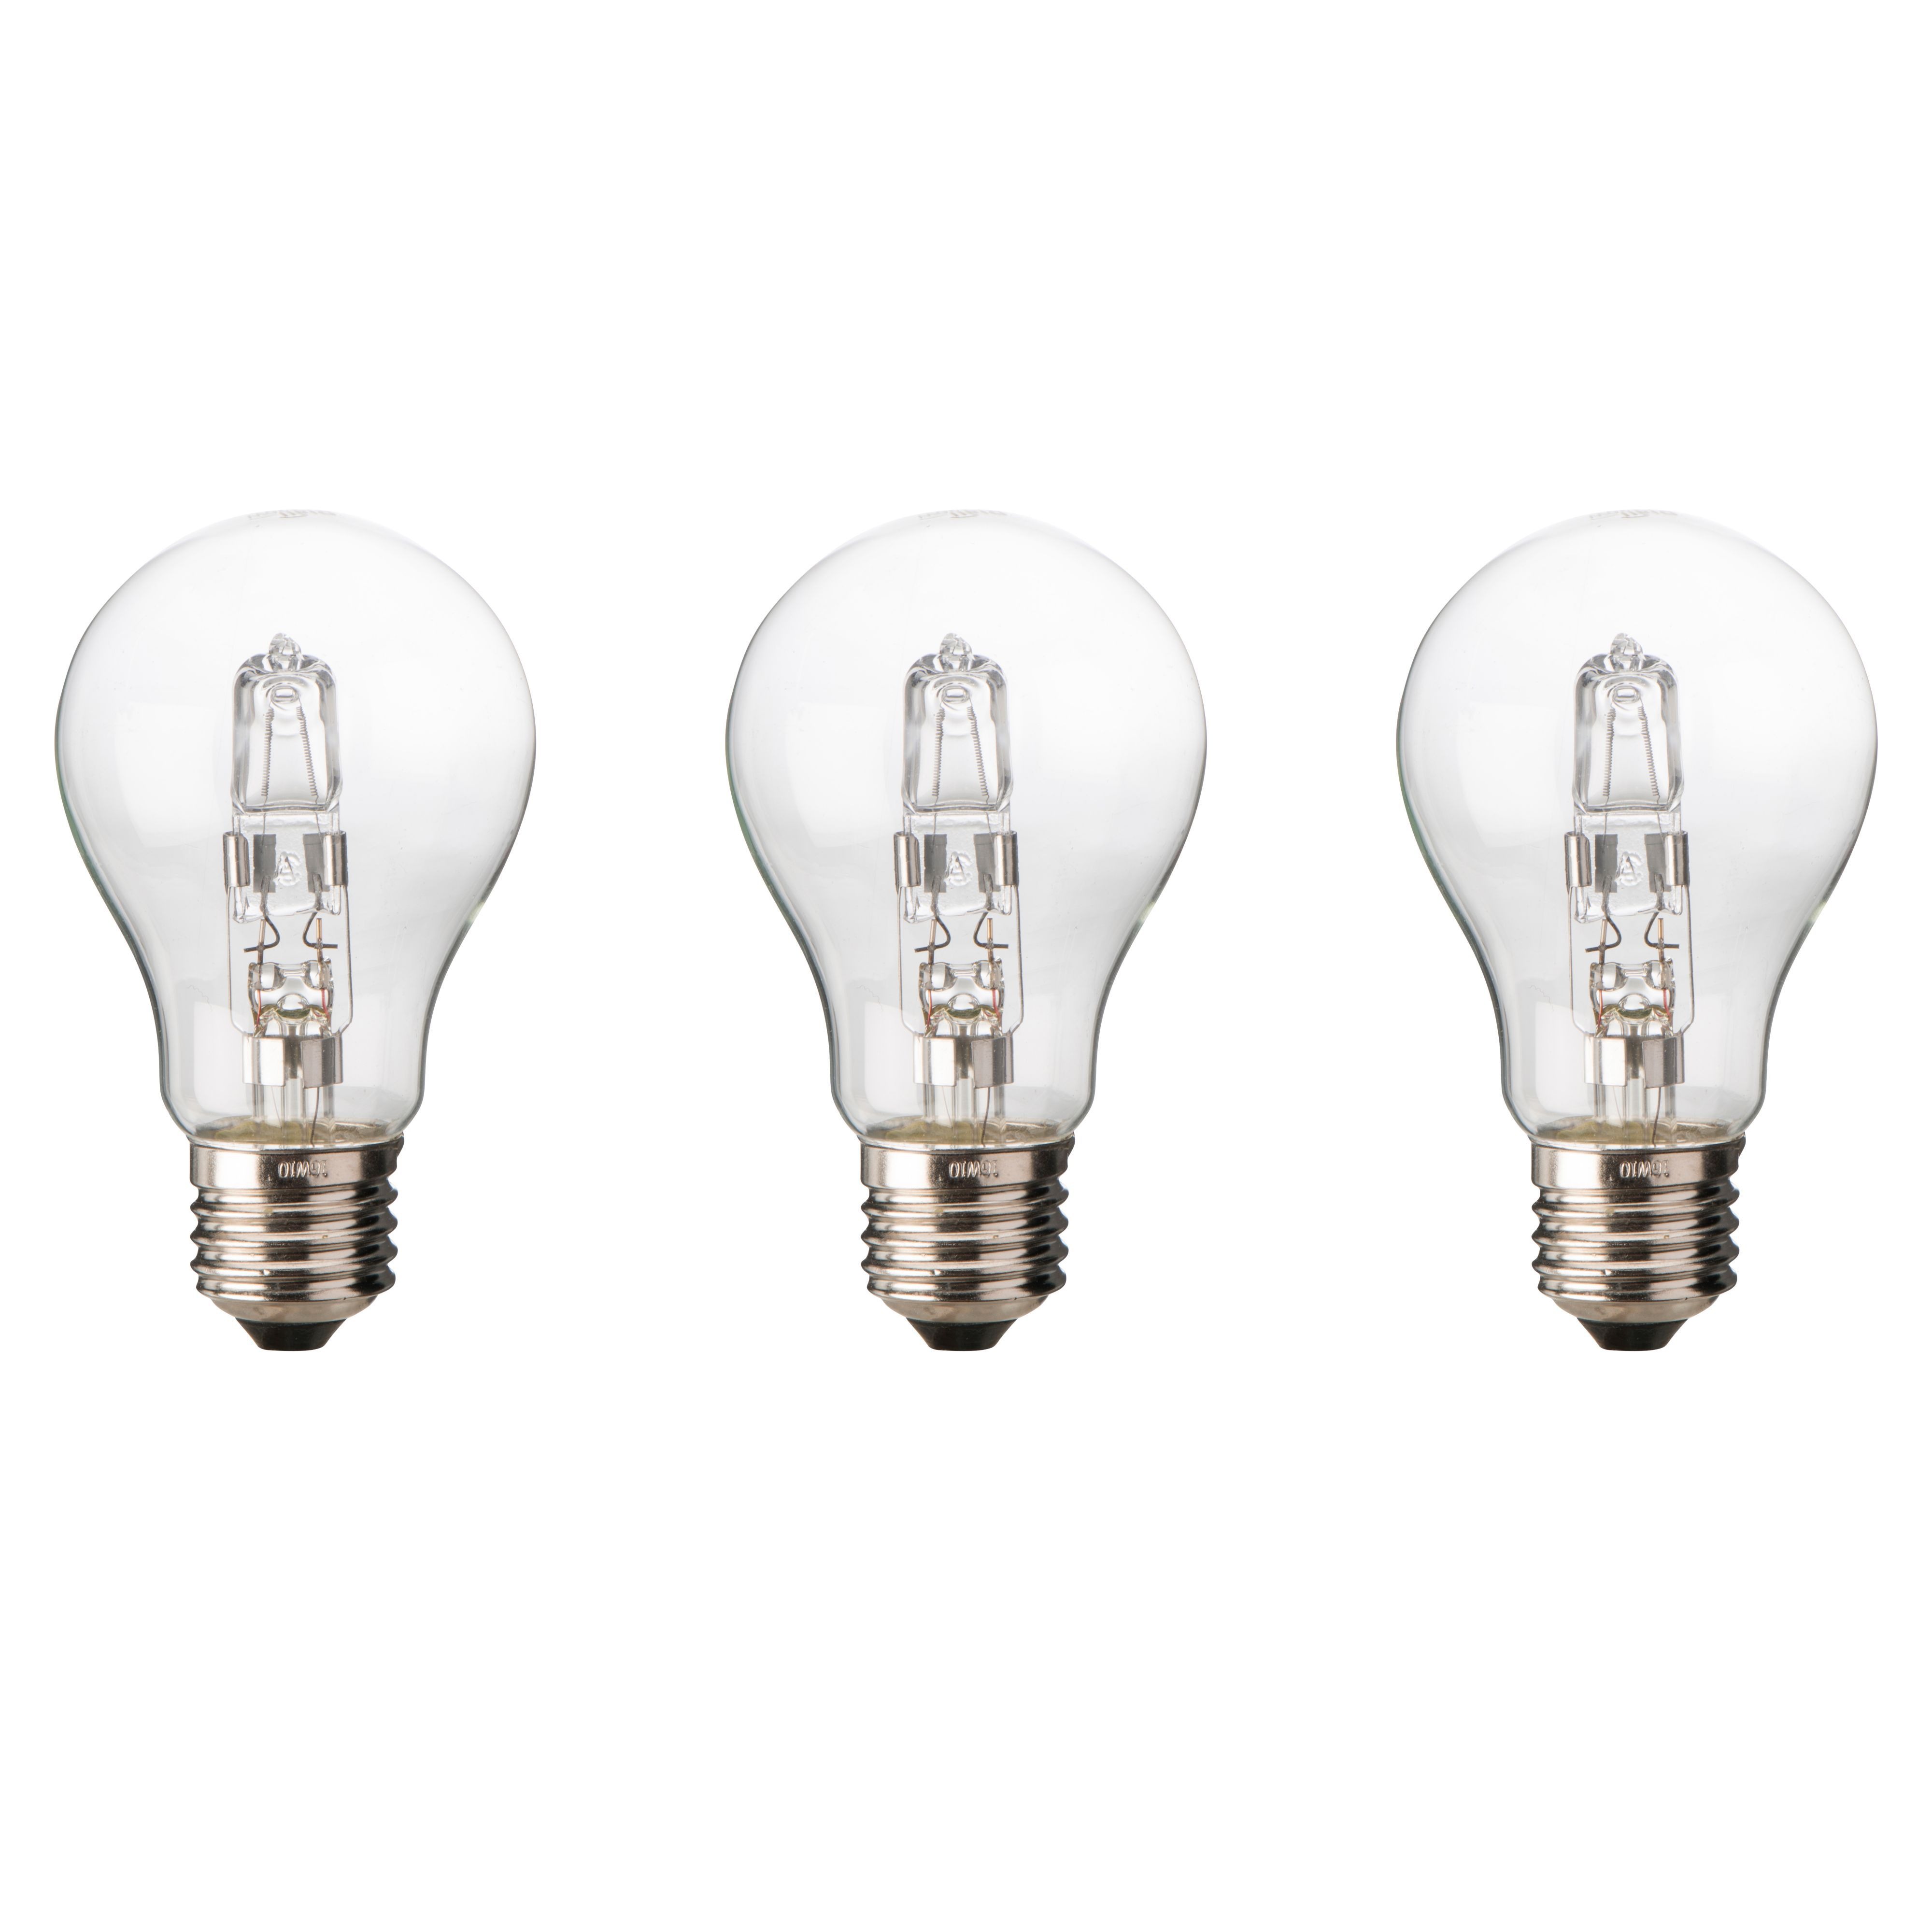 Diall E27 120W Halogen Dimmable Classic Light Bulb, Pack